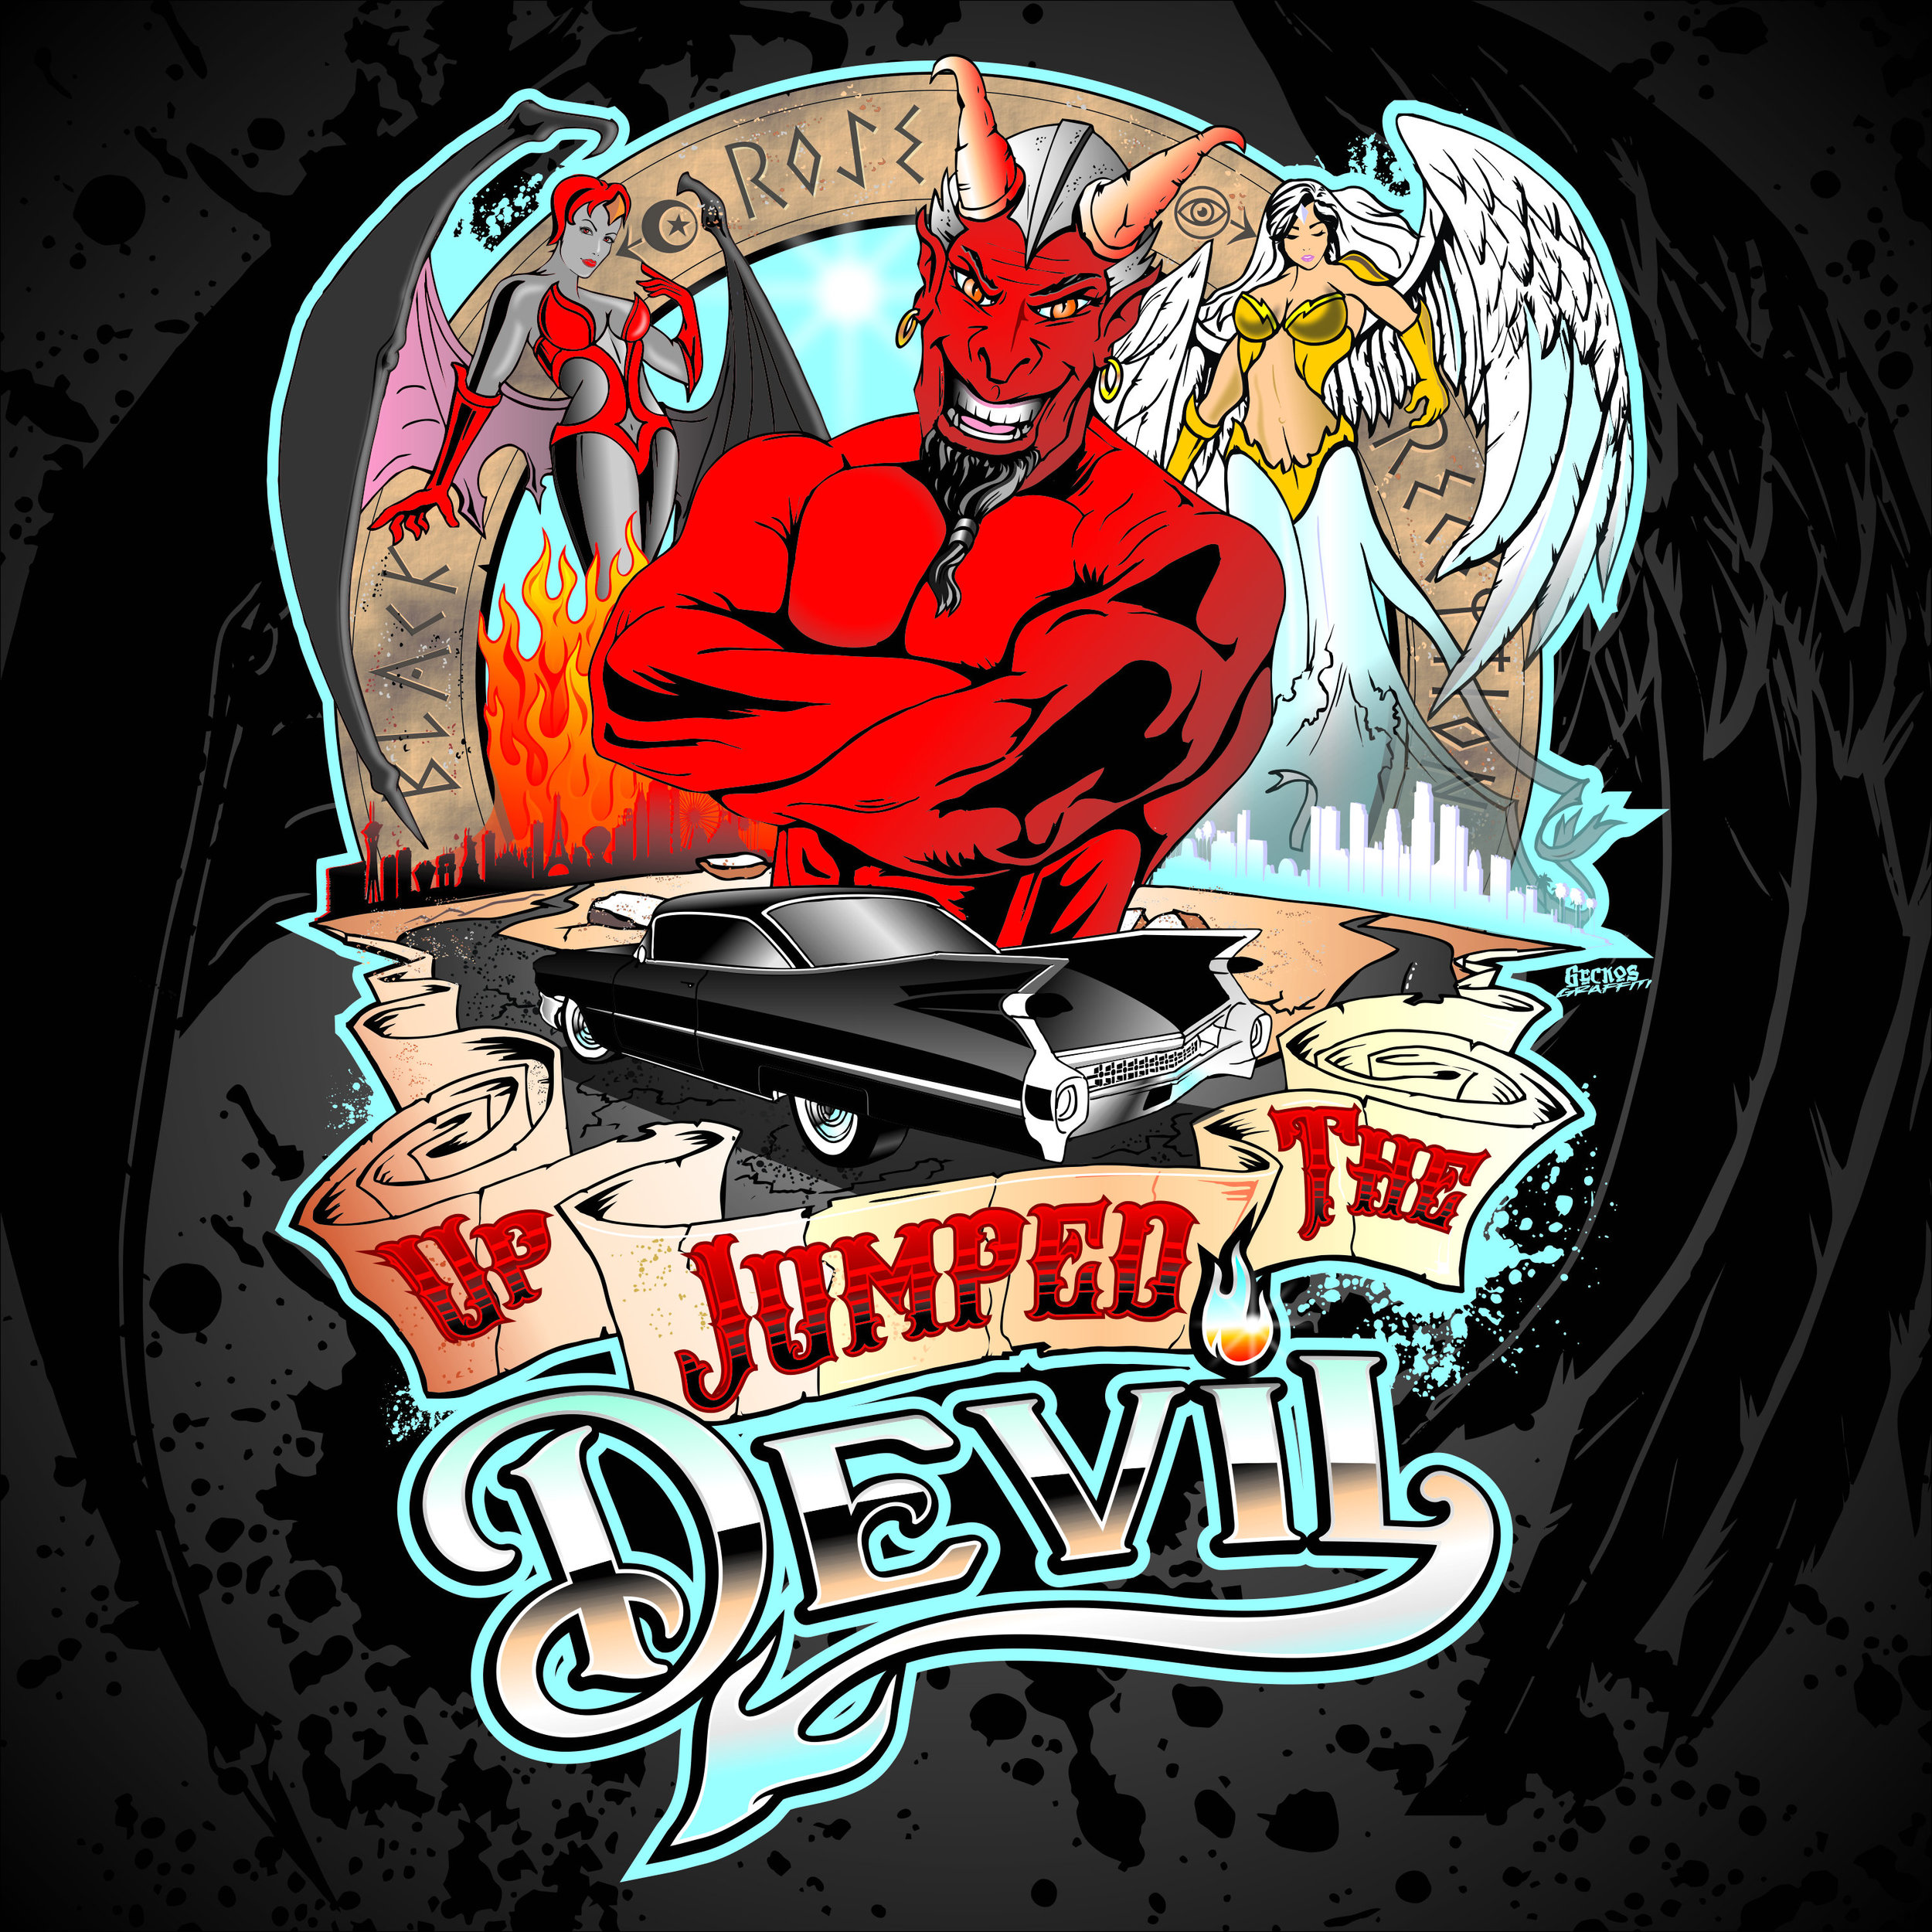 Black Rose Reception up jumped the devil logo.jpg